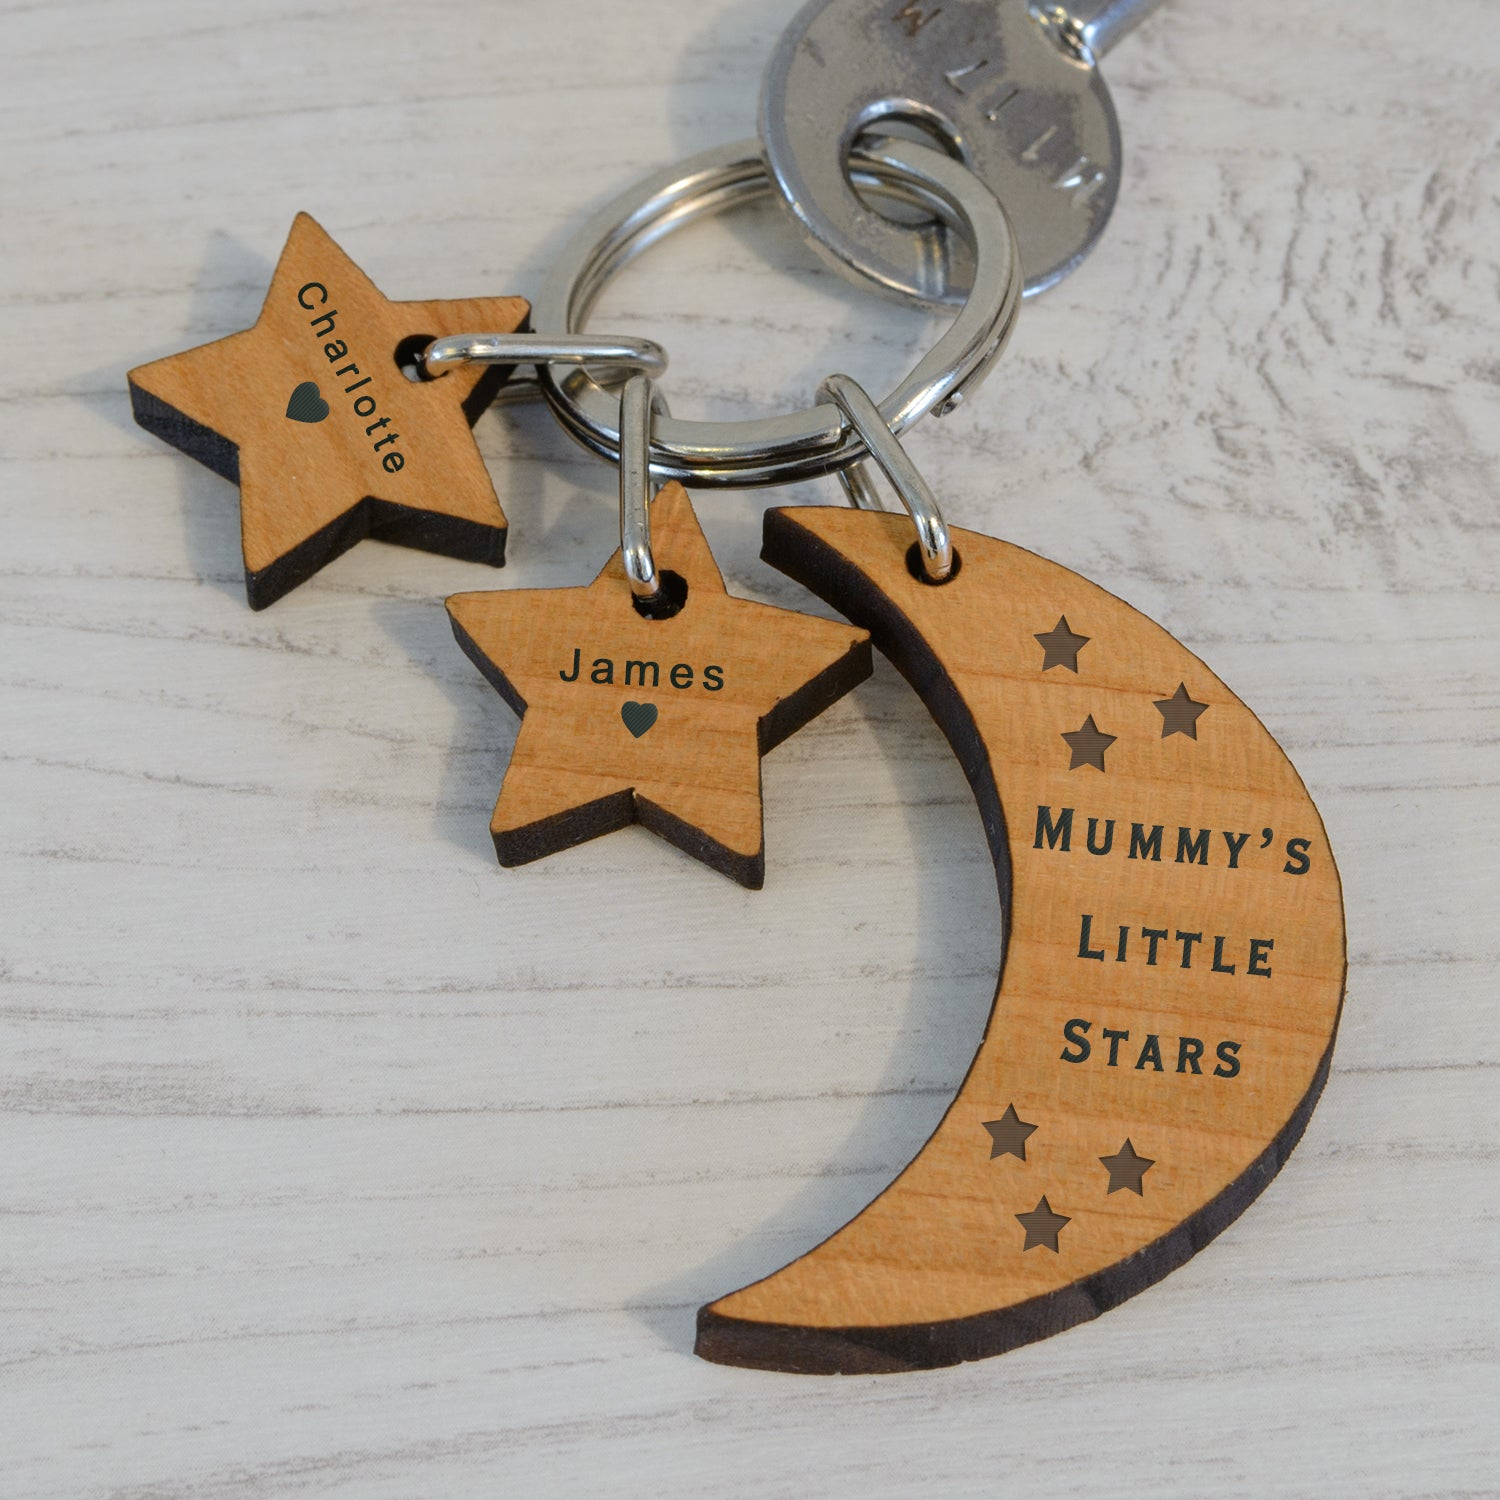 Personalised Wooden Key Ring - LITTLE STARS